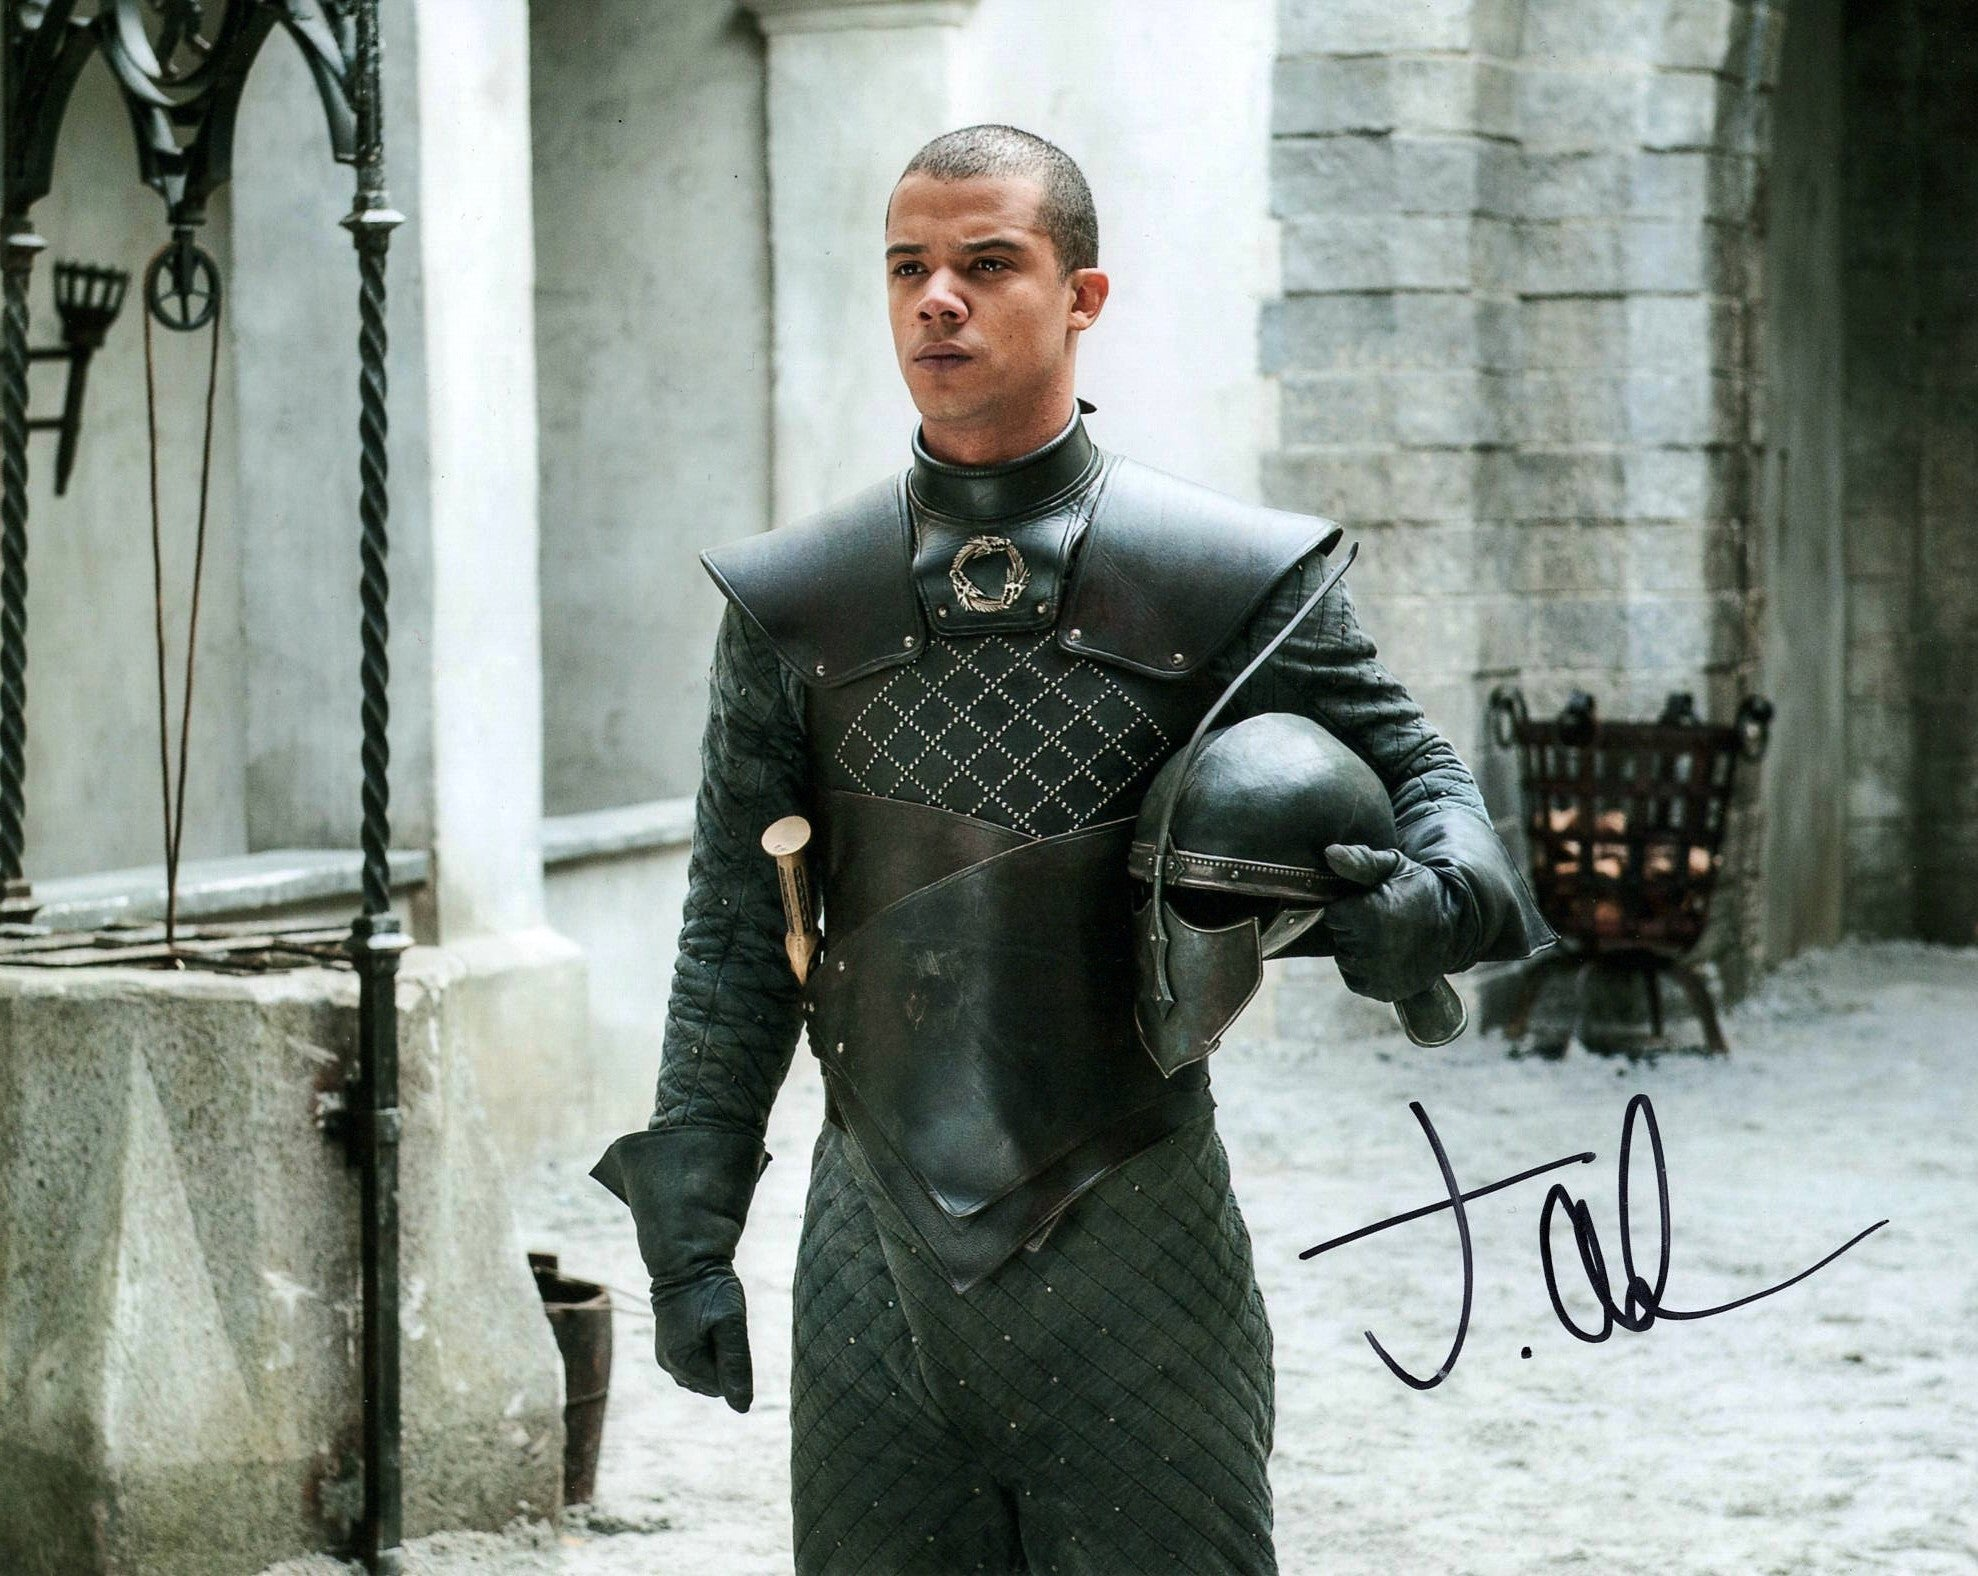 Jacob Anderson Game of Thrones Signed Autograph 8x10 Photo - Outlaw Hobbies Authentic Autographs